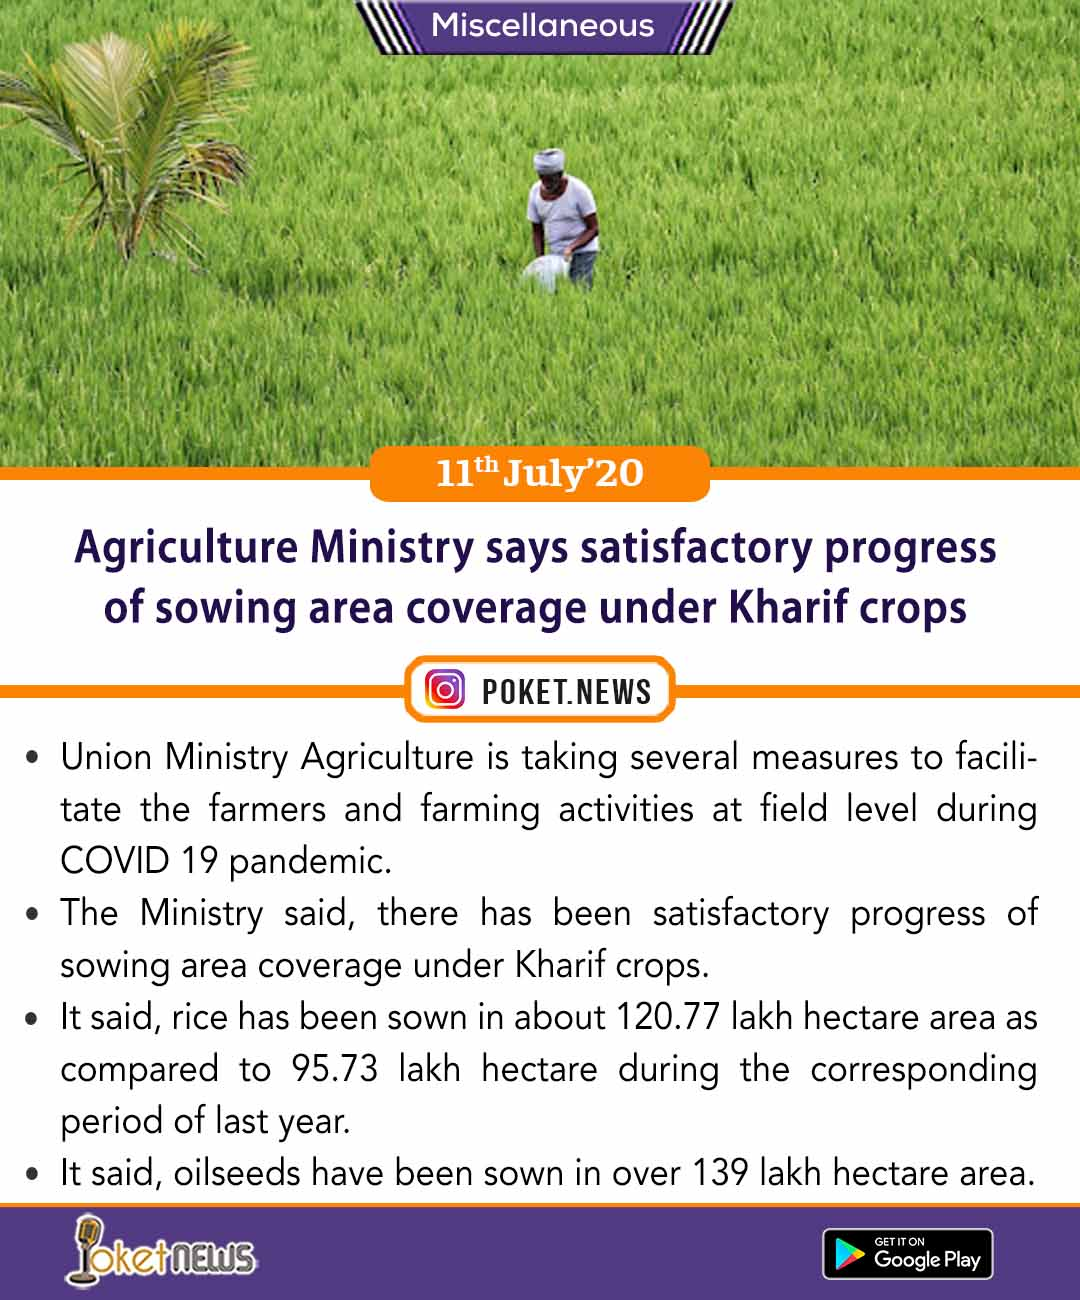 Agriculture Ministry says satisfactory progress of sowing area coverage under Kharif crops